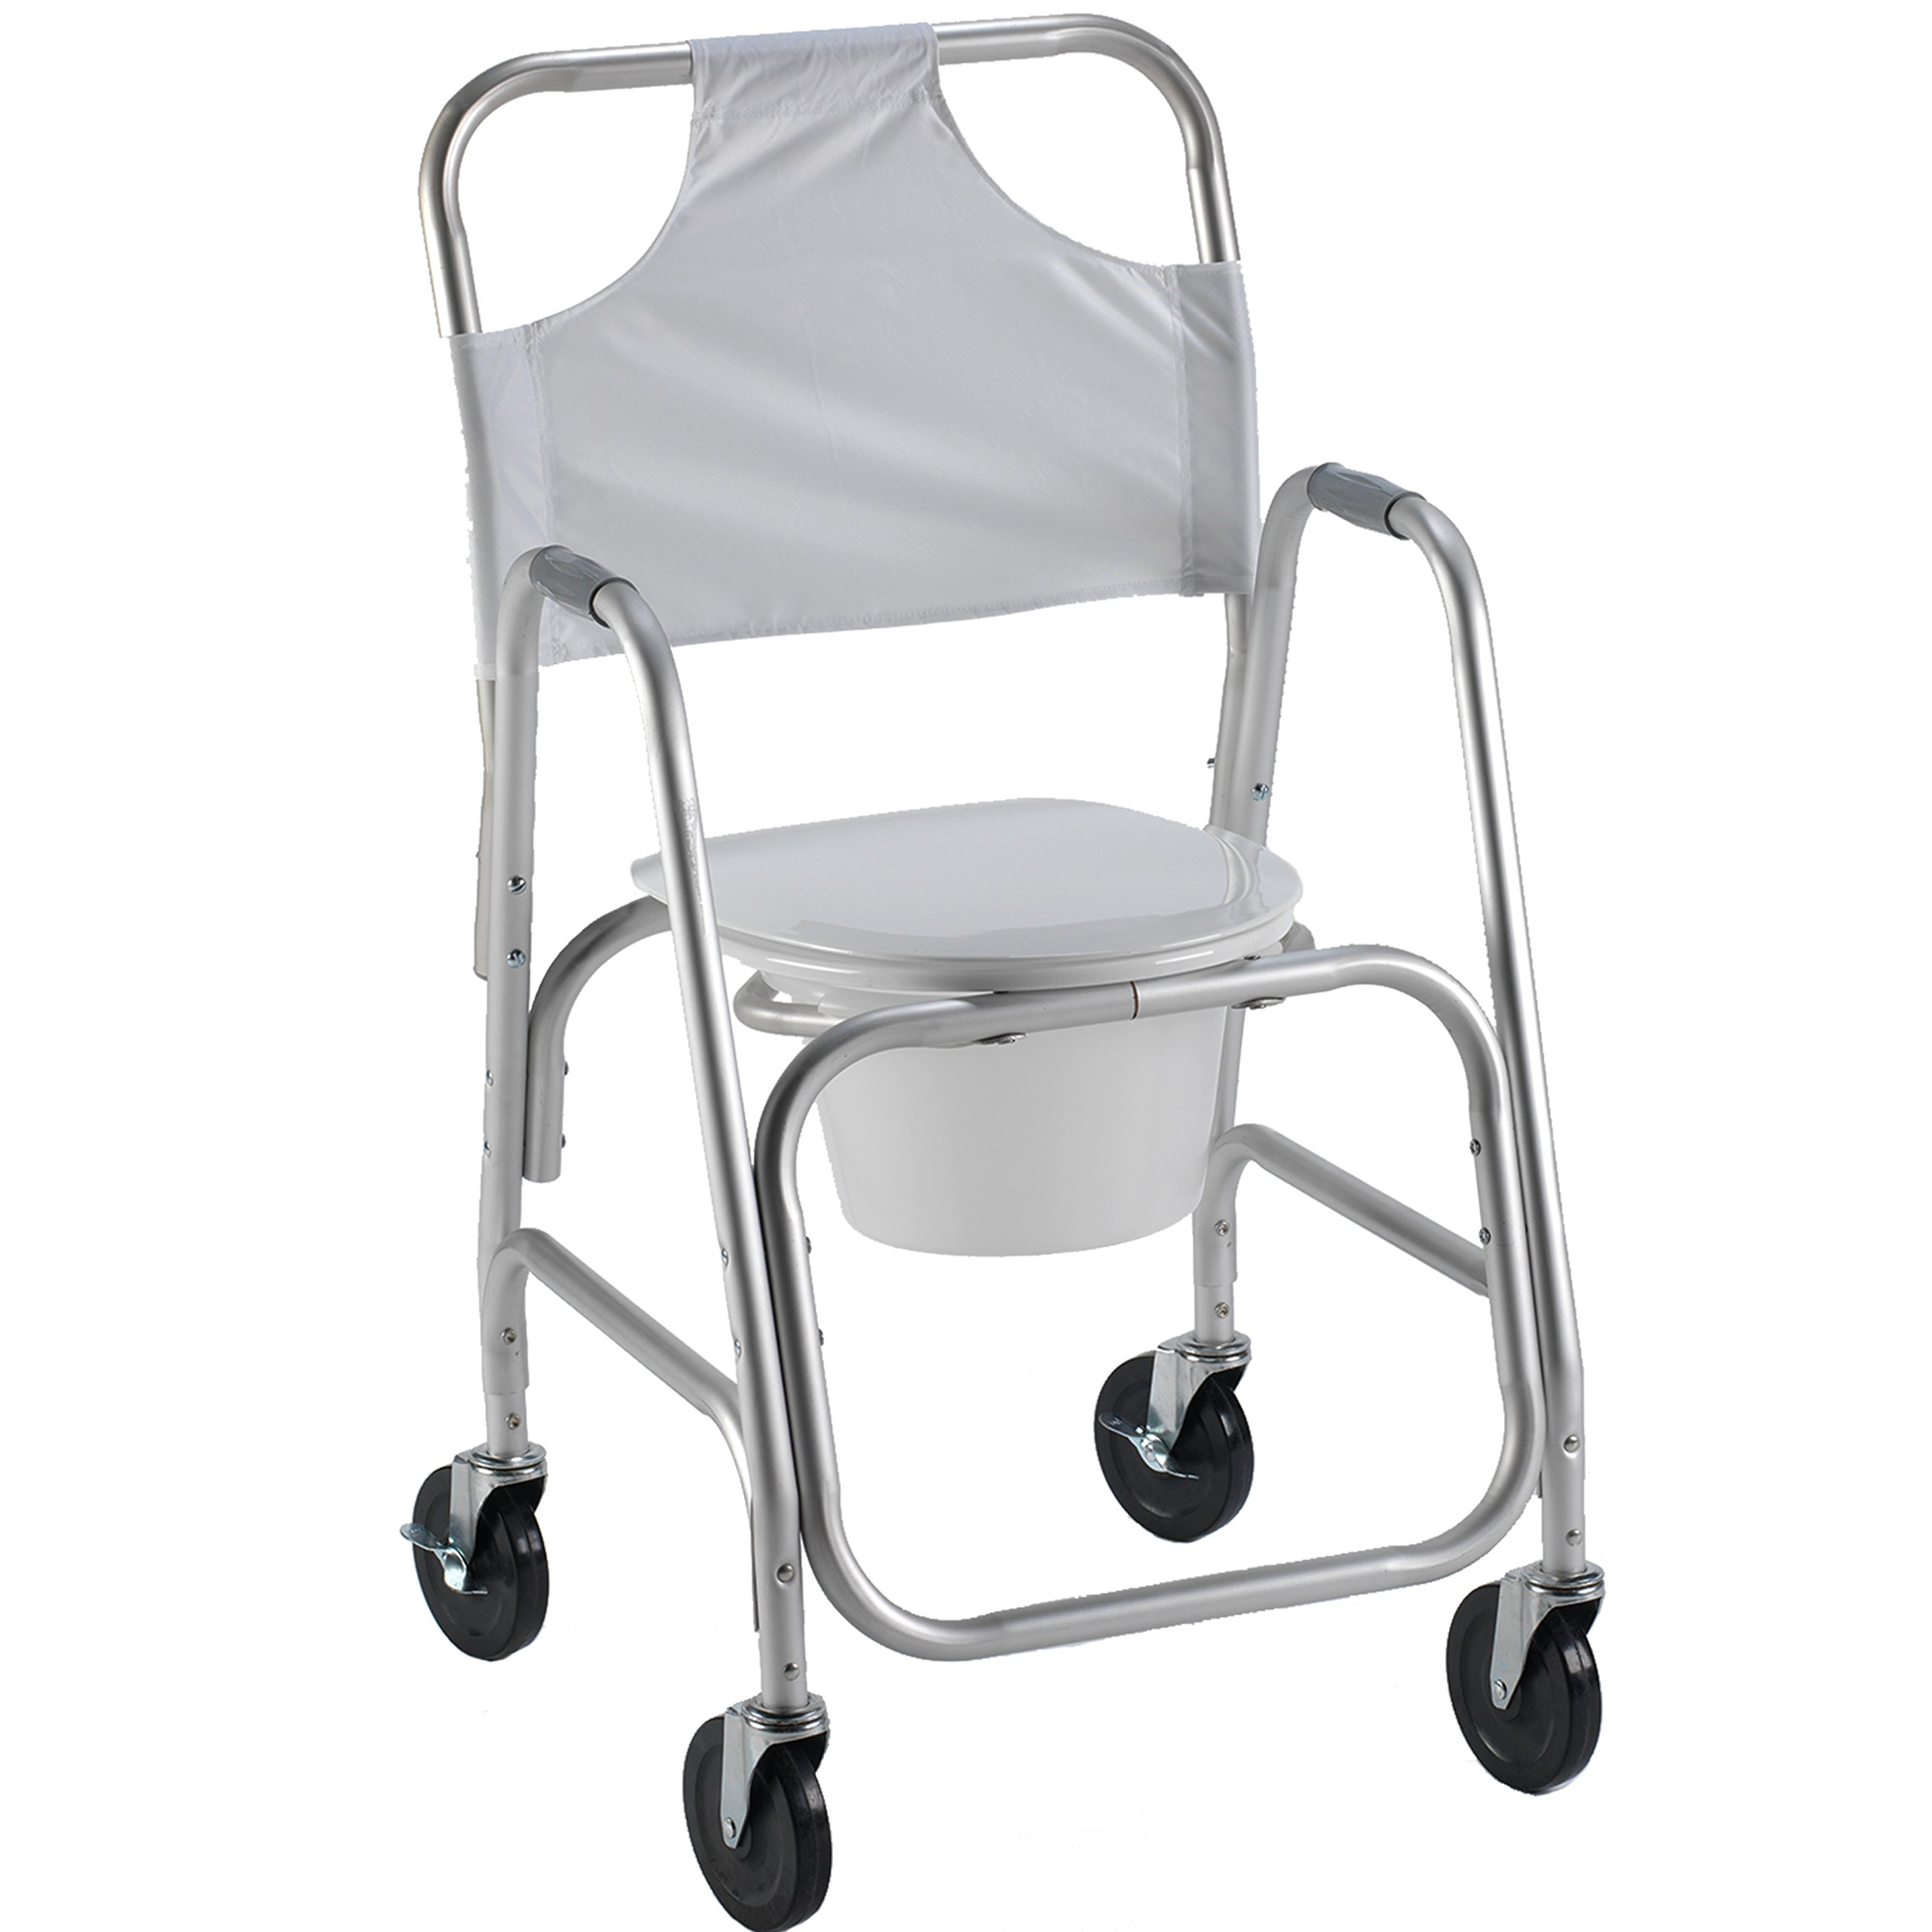 PCP Lightweight Shower Transport Chair with Commode Pail, Grey